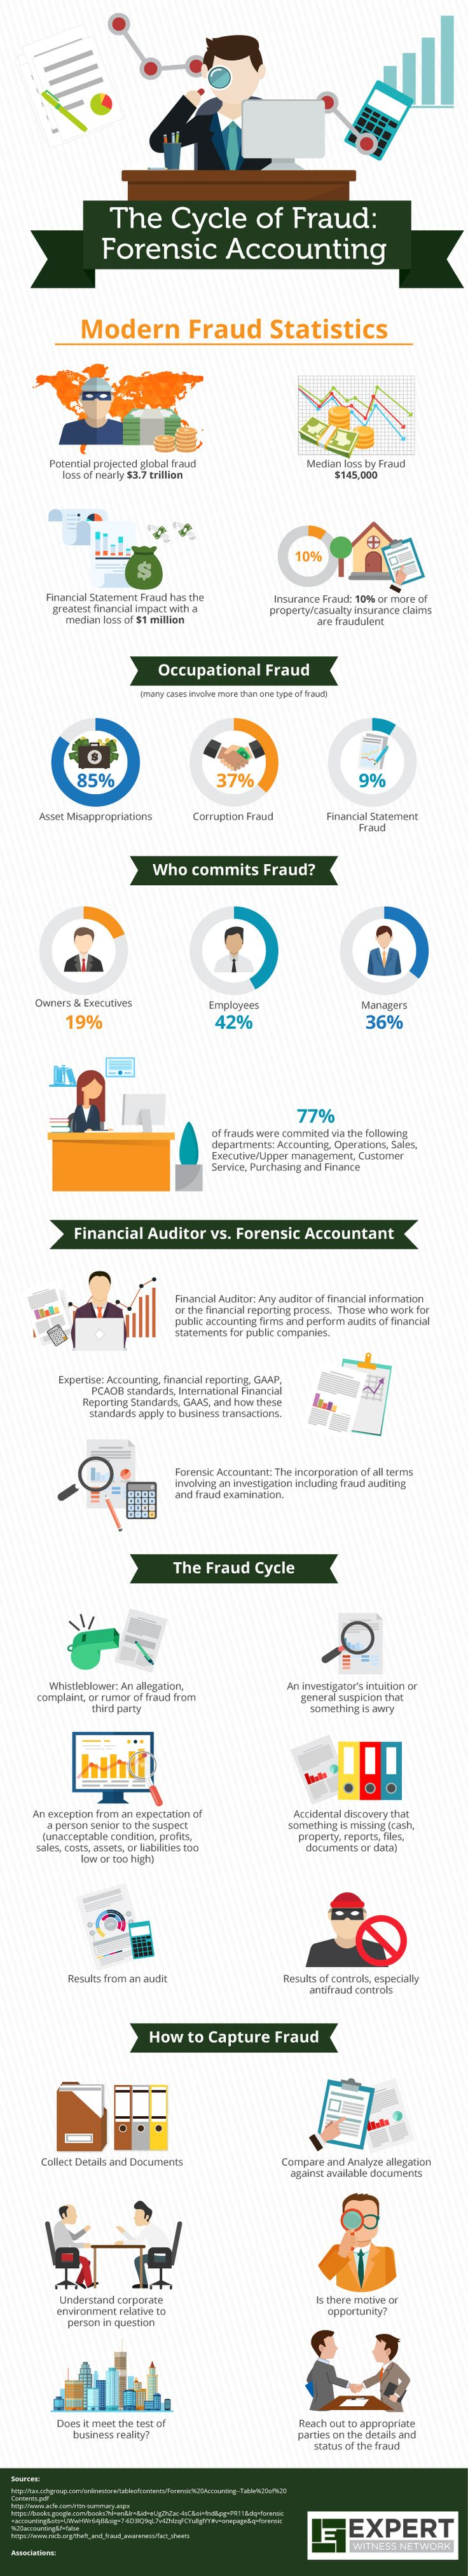 12 best accounting infographics images on pinterest accounting the revolution of forensic accountants and how they are battling against the cycle of fraud its easy to prove and start an investigation people try to get solutioingenieria Image collections